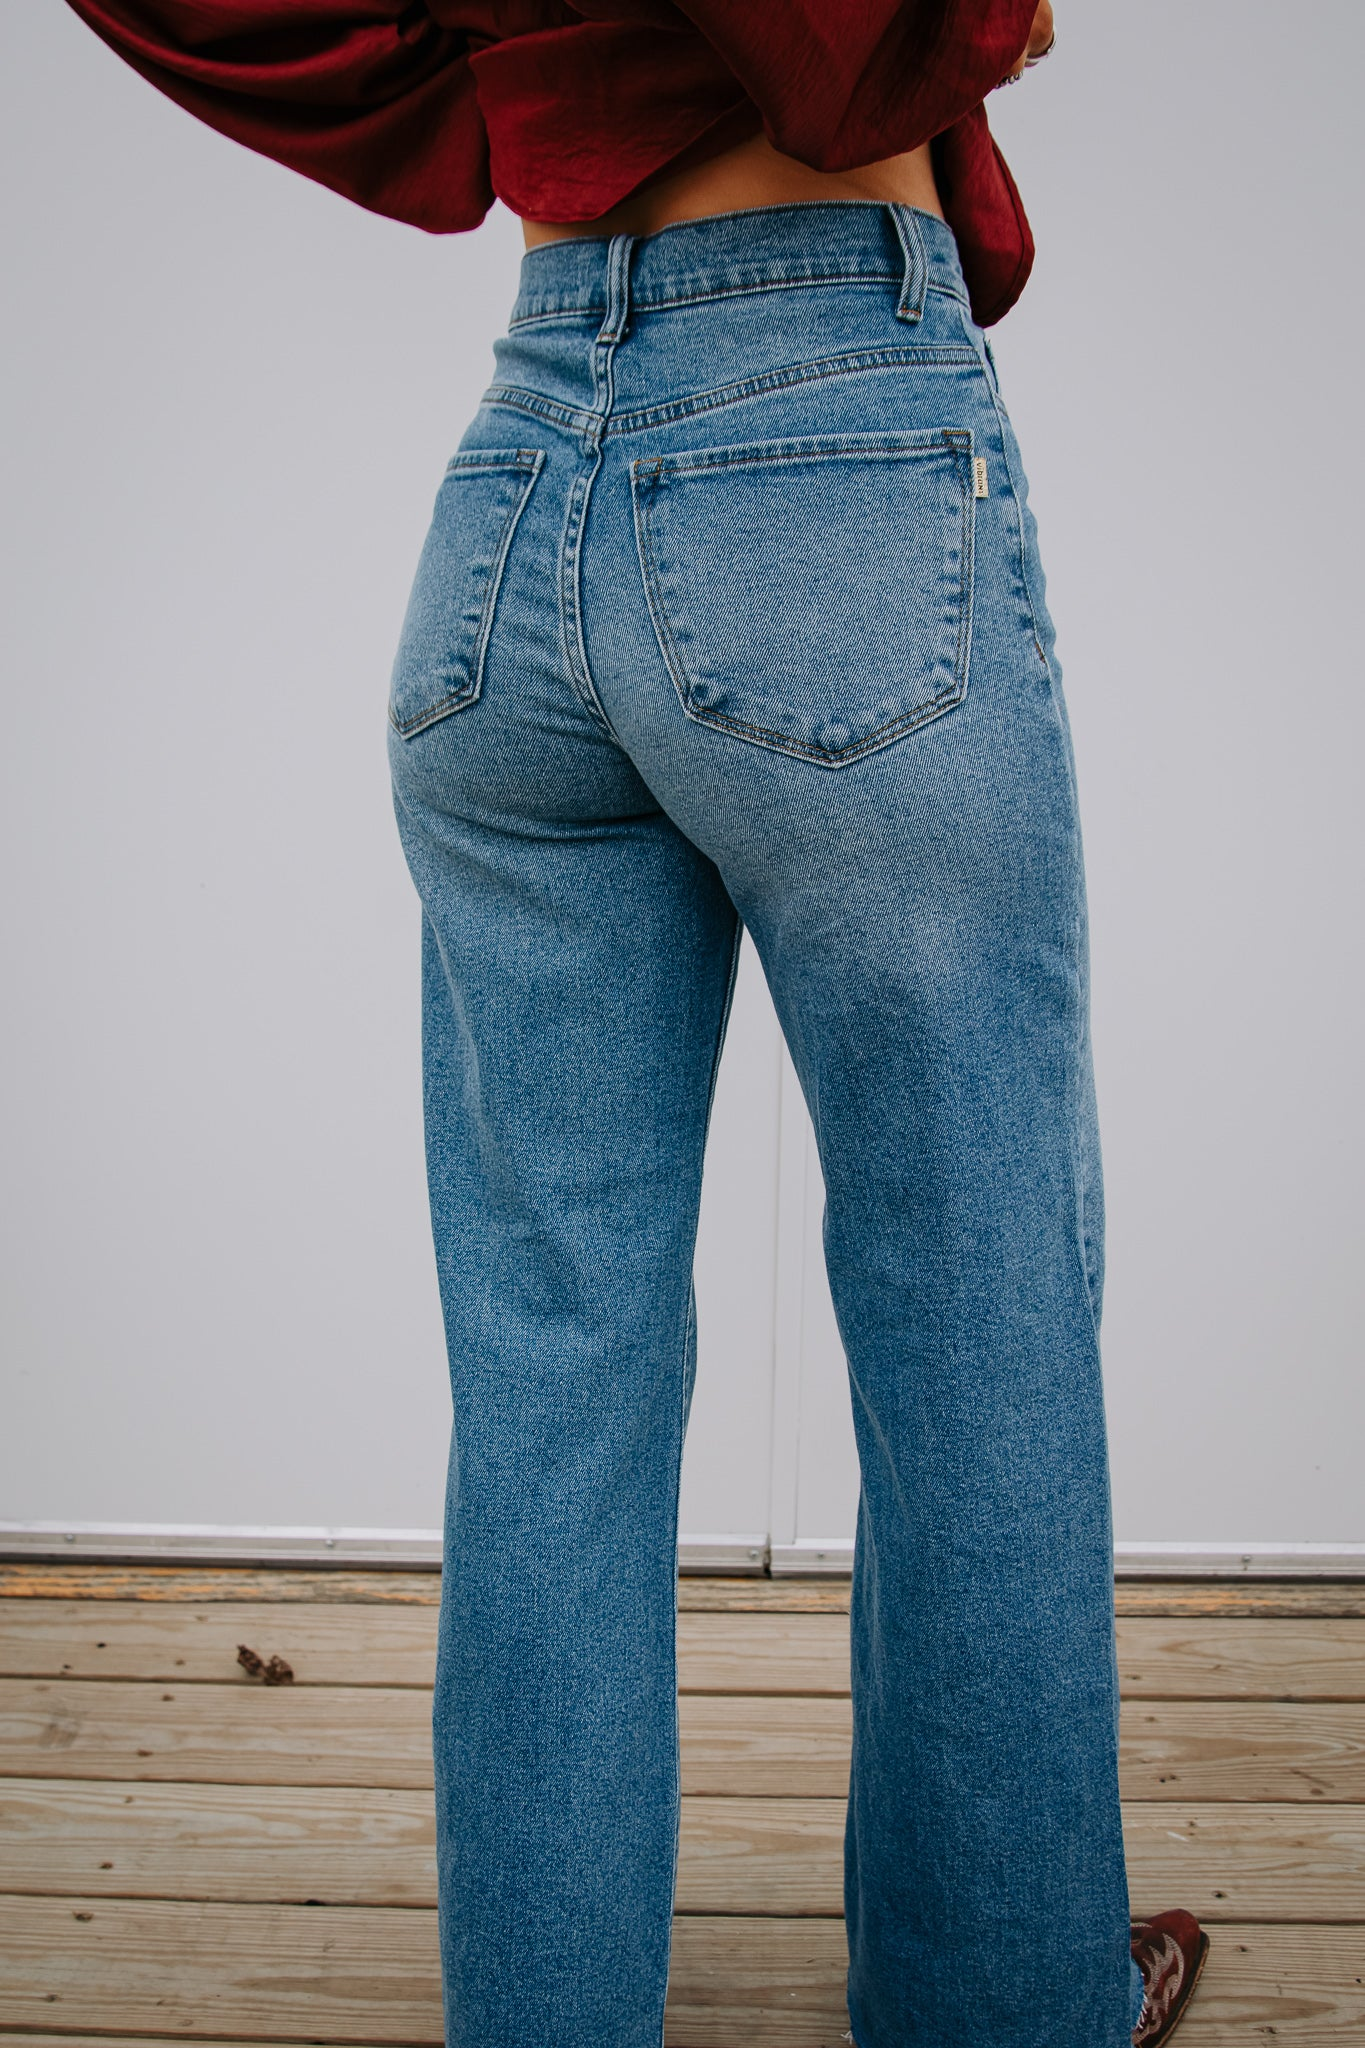 The Rio Wide Leg Jean